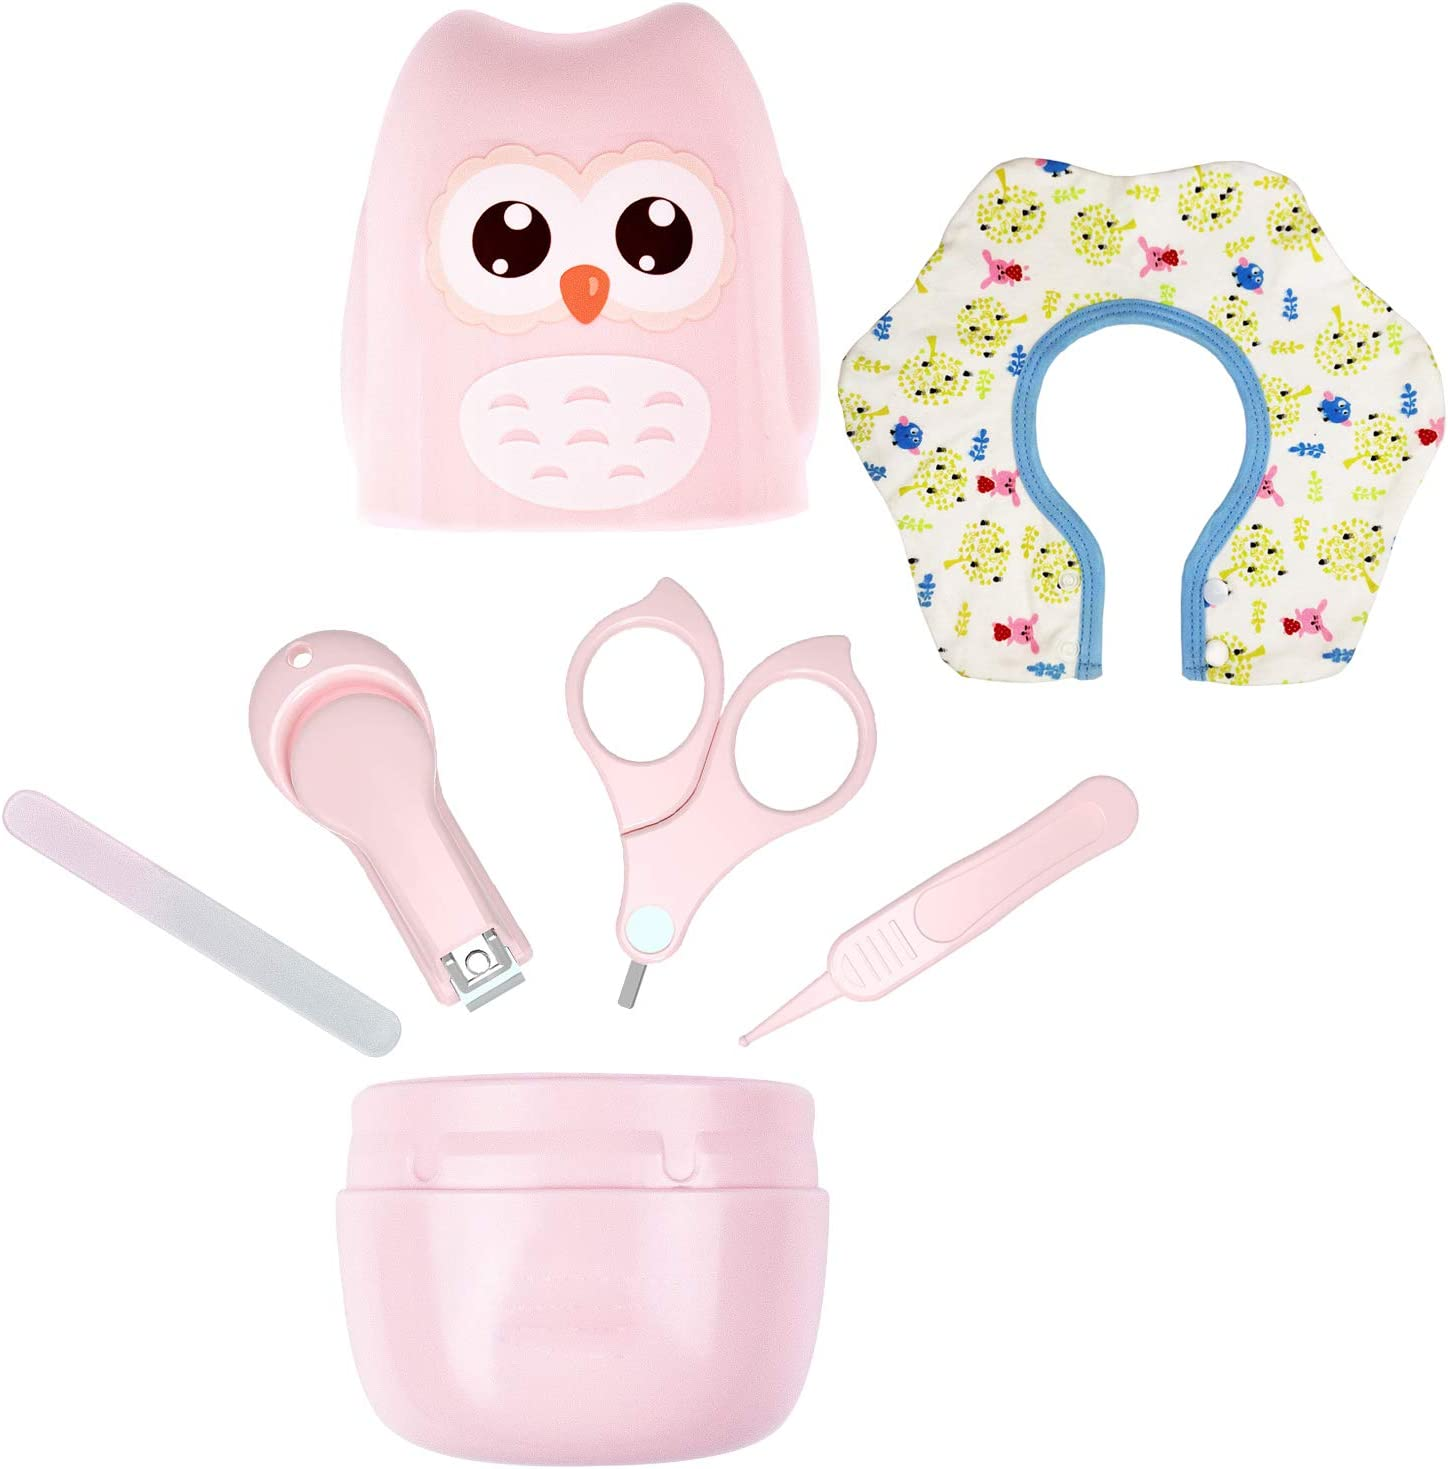 Baby Nail Kit, Choeeu 4 in 1 Baby Nail Clippers Baby Nail Care Set Cute Owl Grooming Kit - Scissor, Nail File & Tweezer, Baby Bibs, Manicure and Pedicure Kit for Newborn, Infants, Toddler (Pink/Owl)